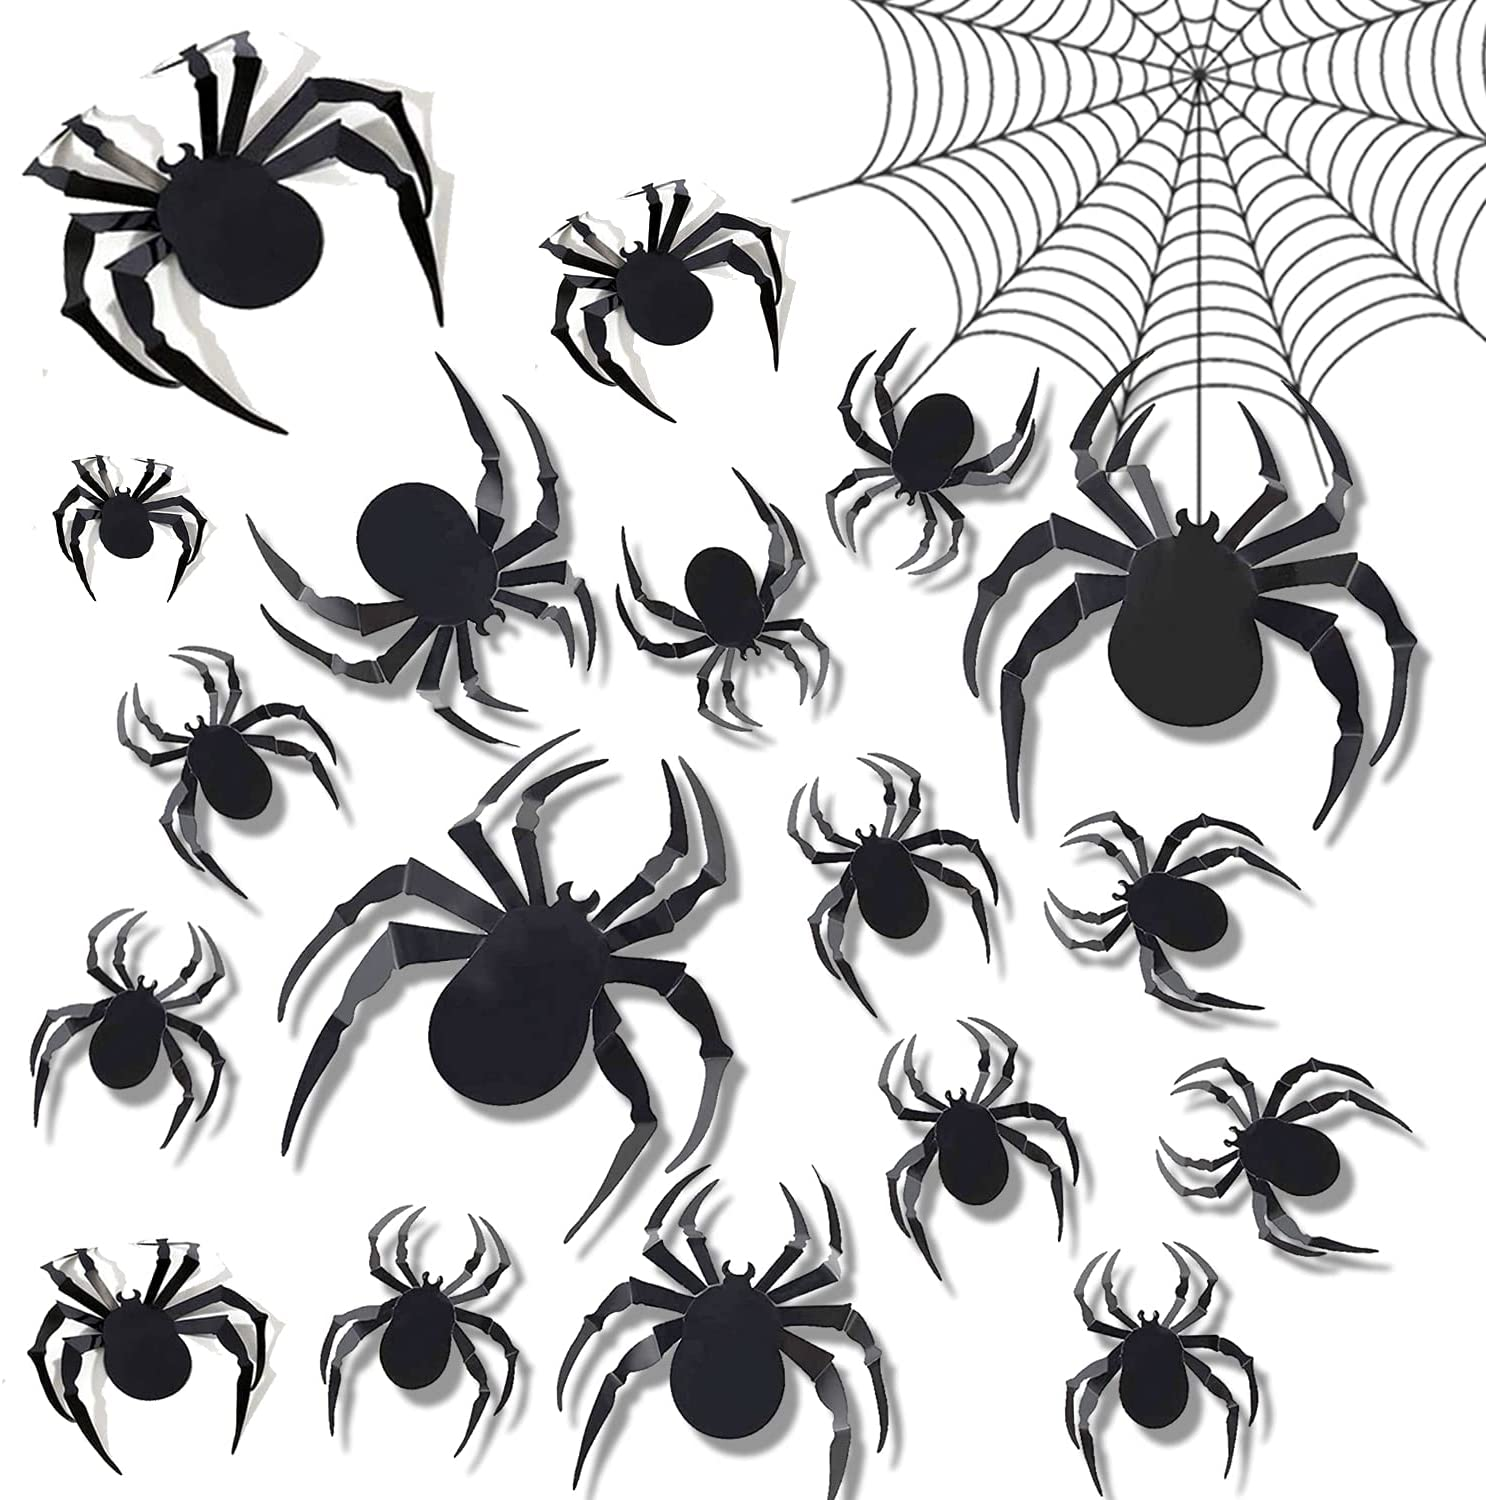 Halloween 3D Black Spider Wall Stickers DIY Spider Wall Clings Decals Decorations Scary Room Wall and Window Decor, Removable for Halloween Party Home Batman Bedroom Living Room Decoration Set